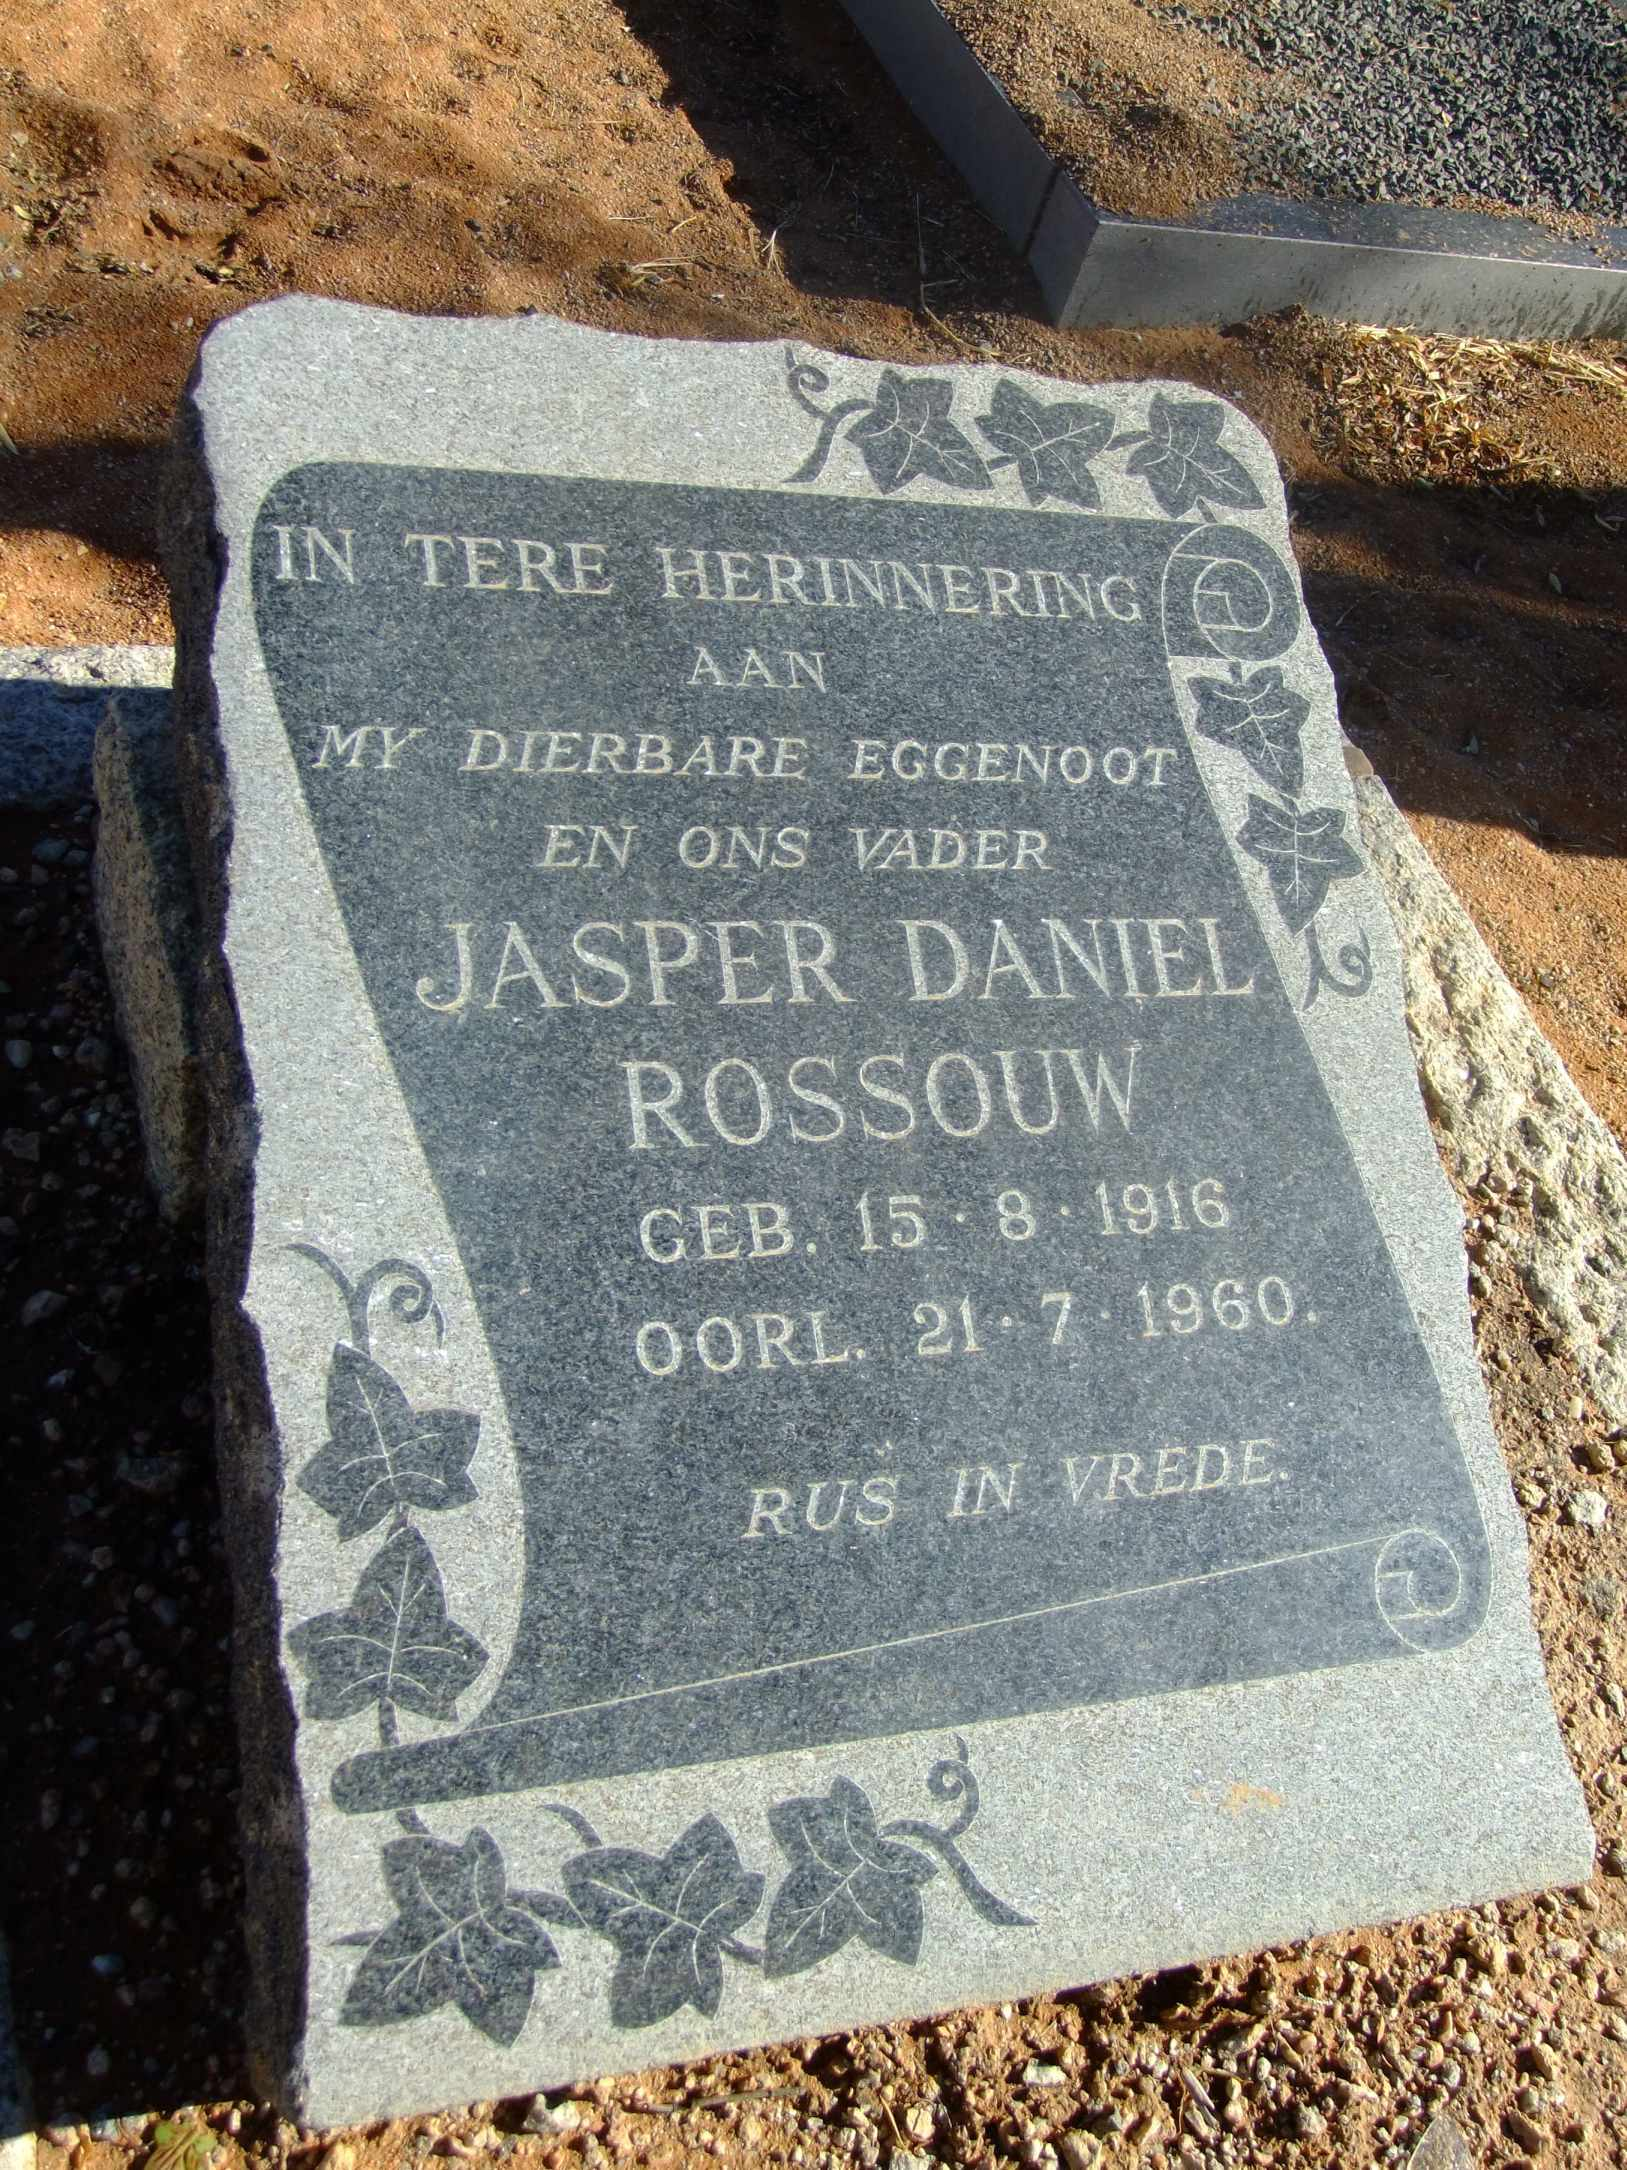 Rossouw, Jasper Daniel born 15 August 1916 died 21 July 1960